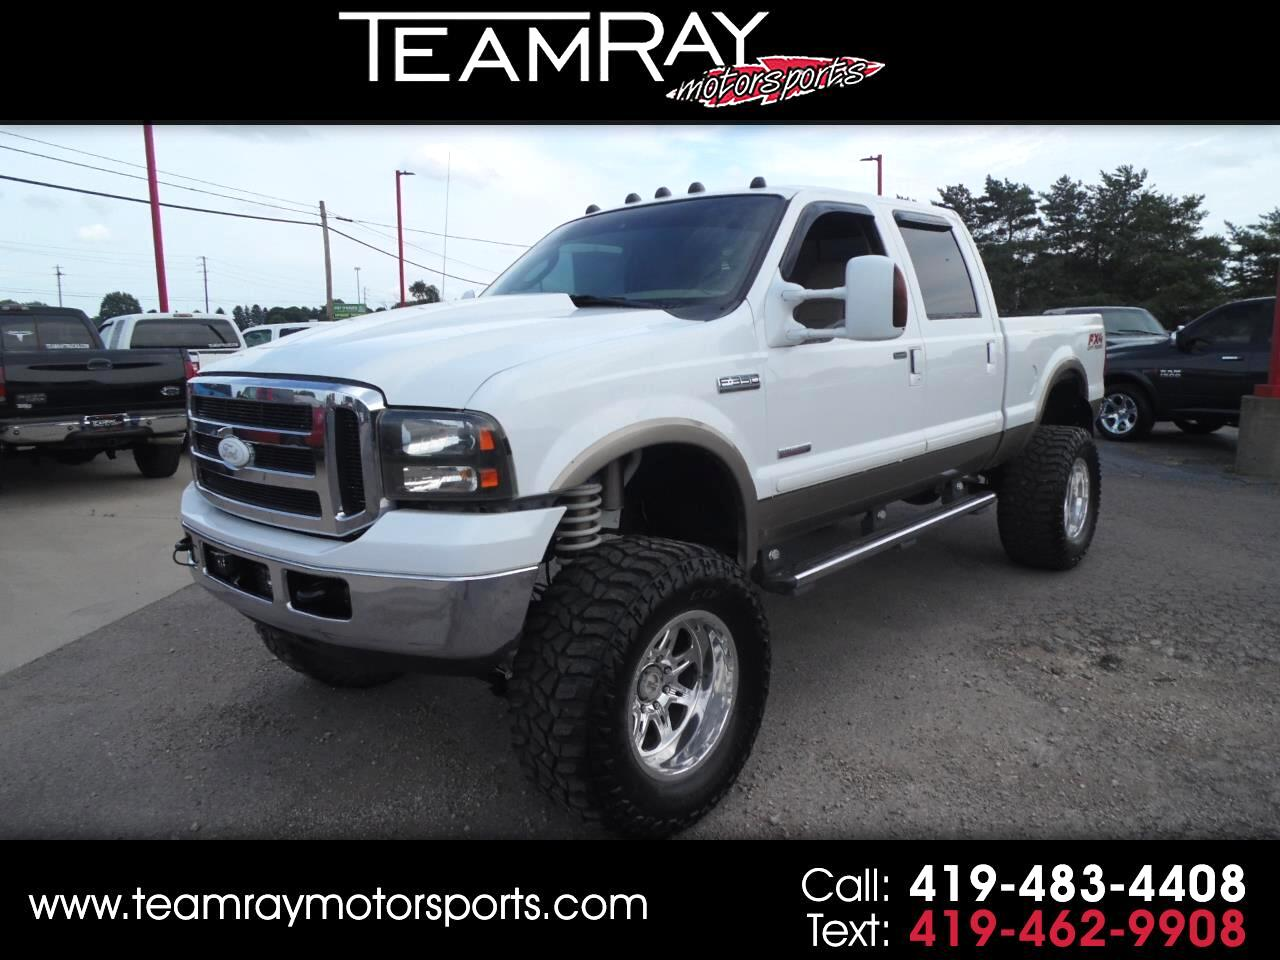 2005 Ford Super Duty F-350 SRW Crew Cab 156